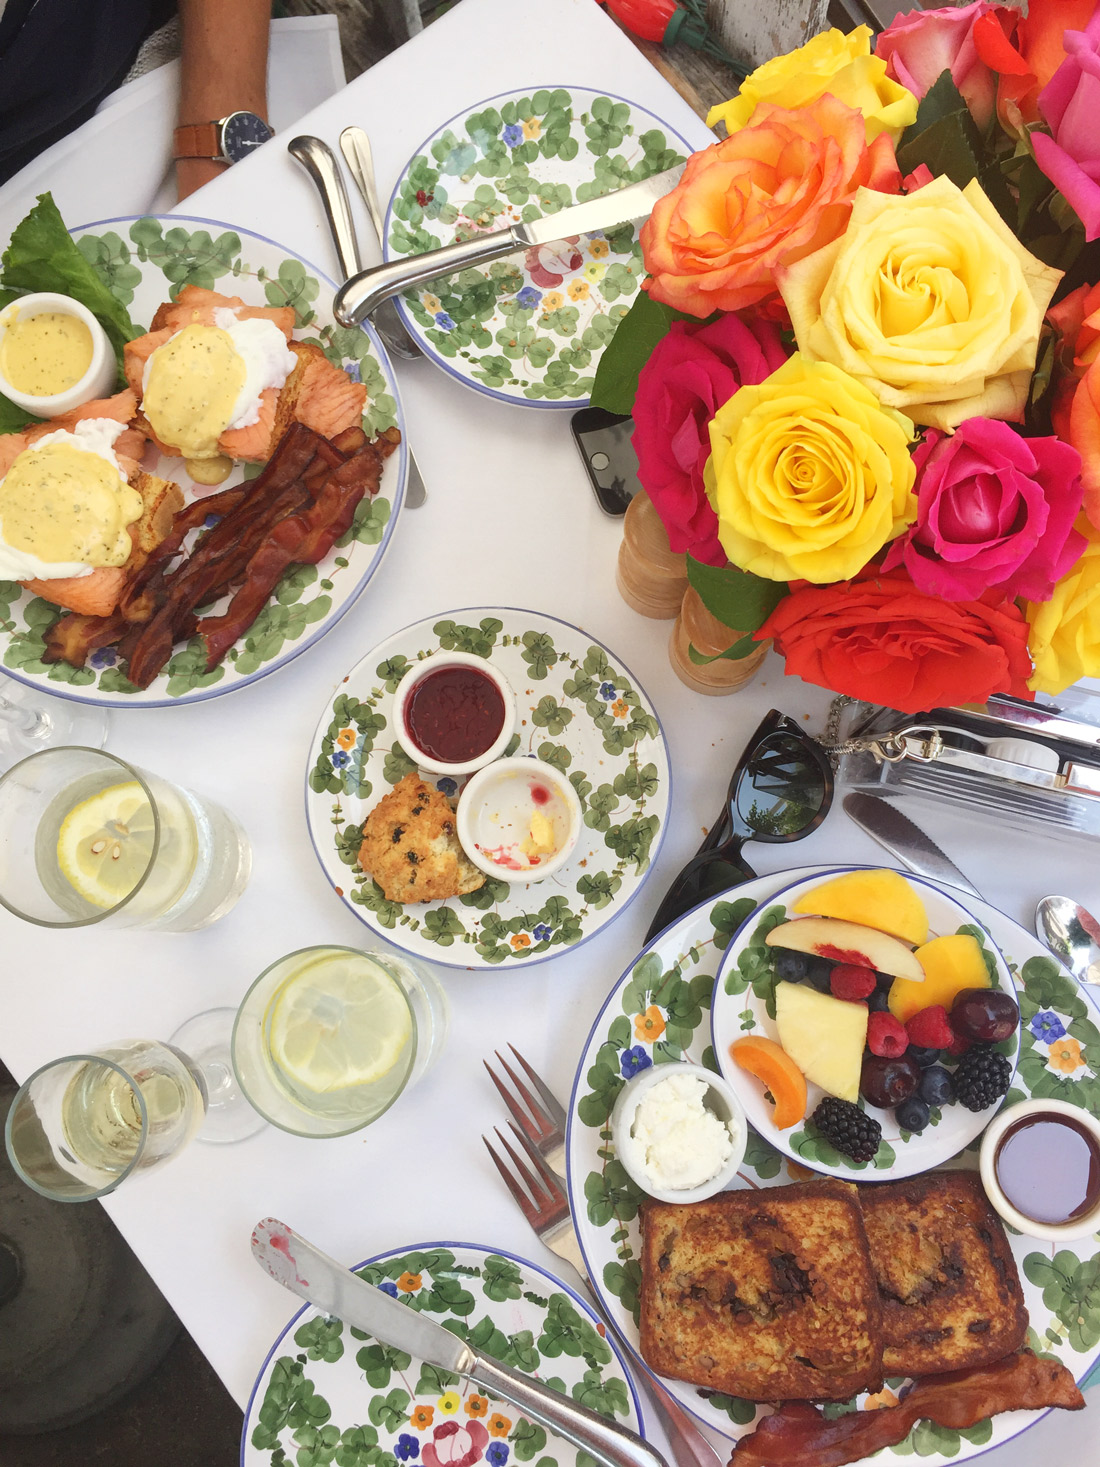 Bag-at-you---Lifestyle-blog---Where-to-have-brunch-in-Los-Angeles